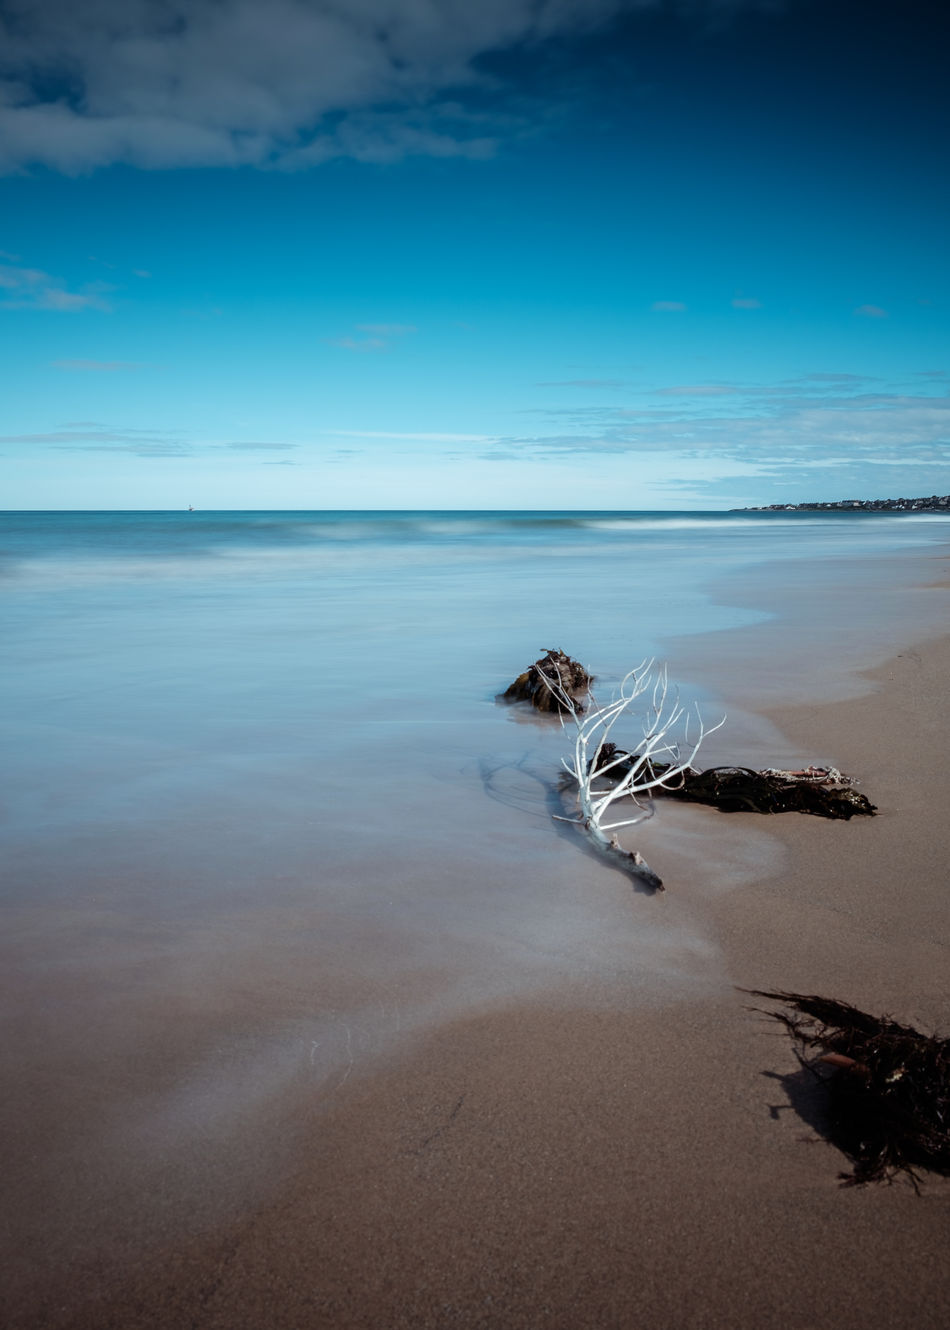 What is better than a beach walk with fresh air and just the sound of the wind and the waves.. Location: Lossiemouth, Scotland Equipment: Fujifilm X-T1 + XF18-55 Beach Beauty In Nature Blue Cloud - Sky Day Environment Fuji Fujifilm Horizon Horizon Over Water Landscape Lossiemouth Nature No People Outdoors Sand Scenics Schottland Scotland Sea Sky Water Wave Waves Wilderness